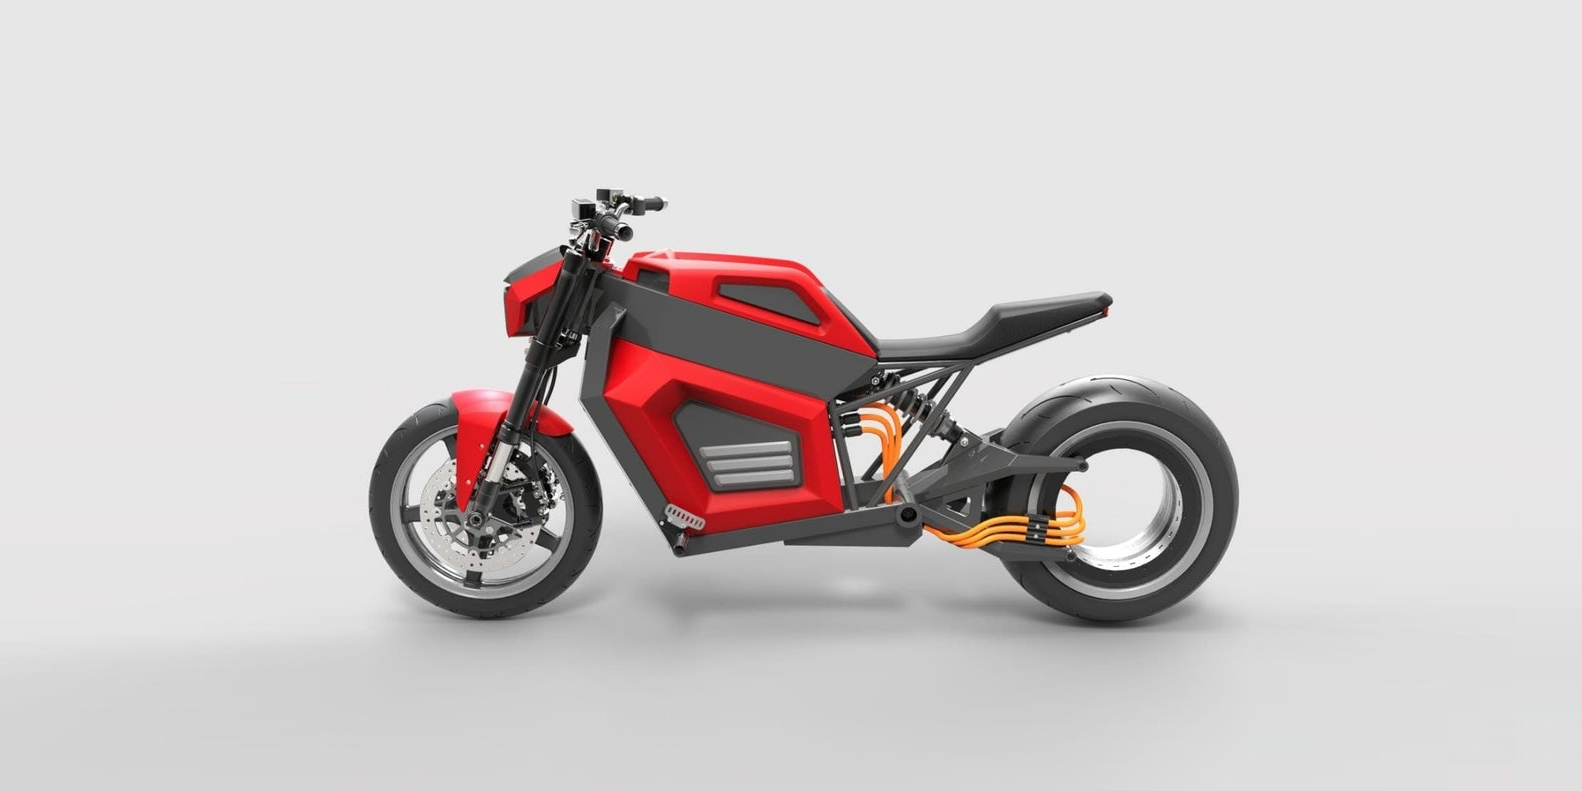 RMK E2 electric motorcycle shows off radical new electric